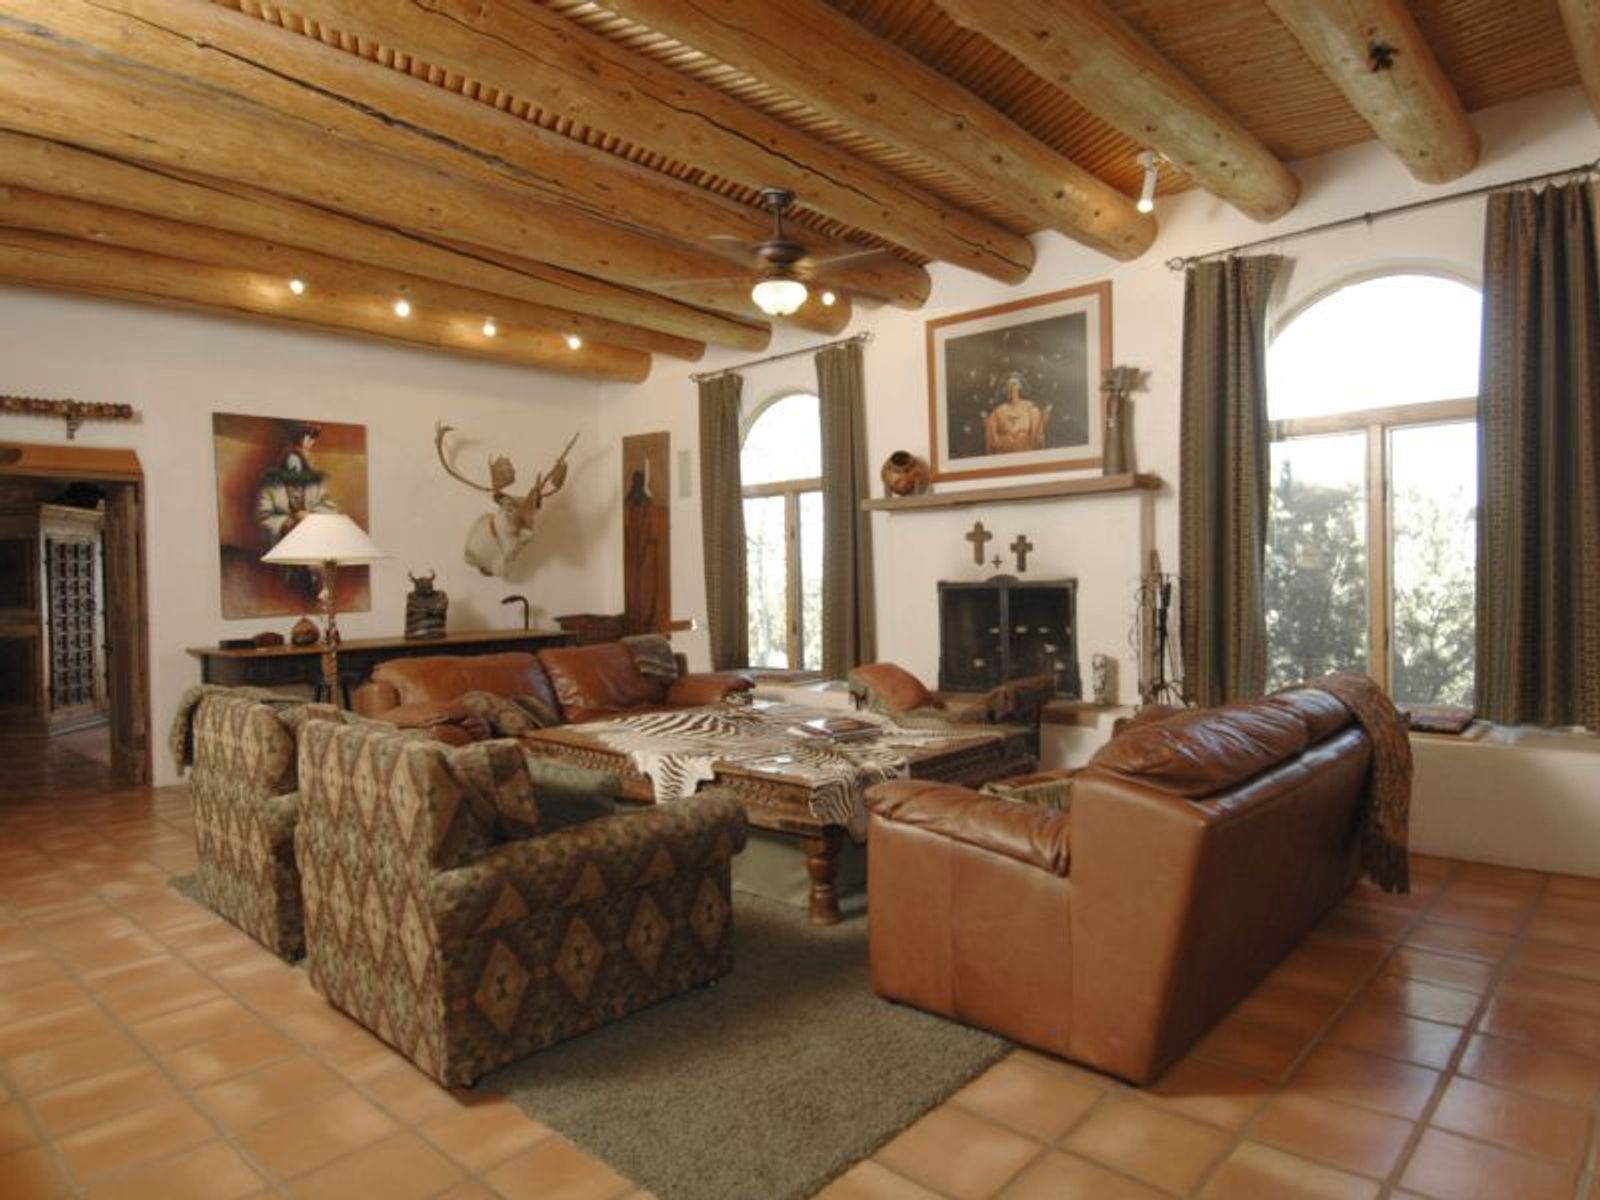 1312 Lejano Lane, Santa Fe NM Single Family Home - Santa Fe Real Estate